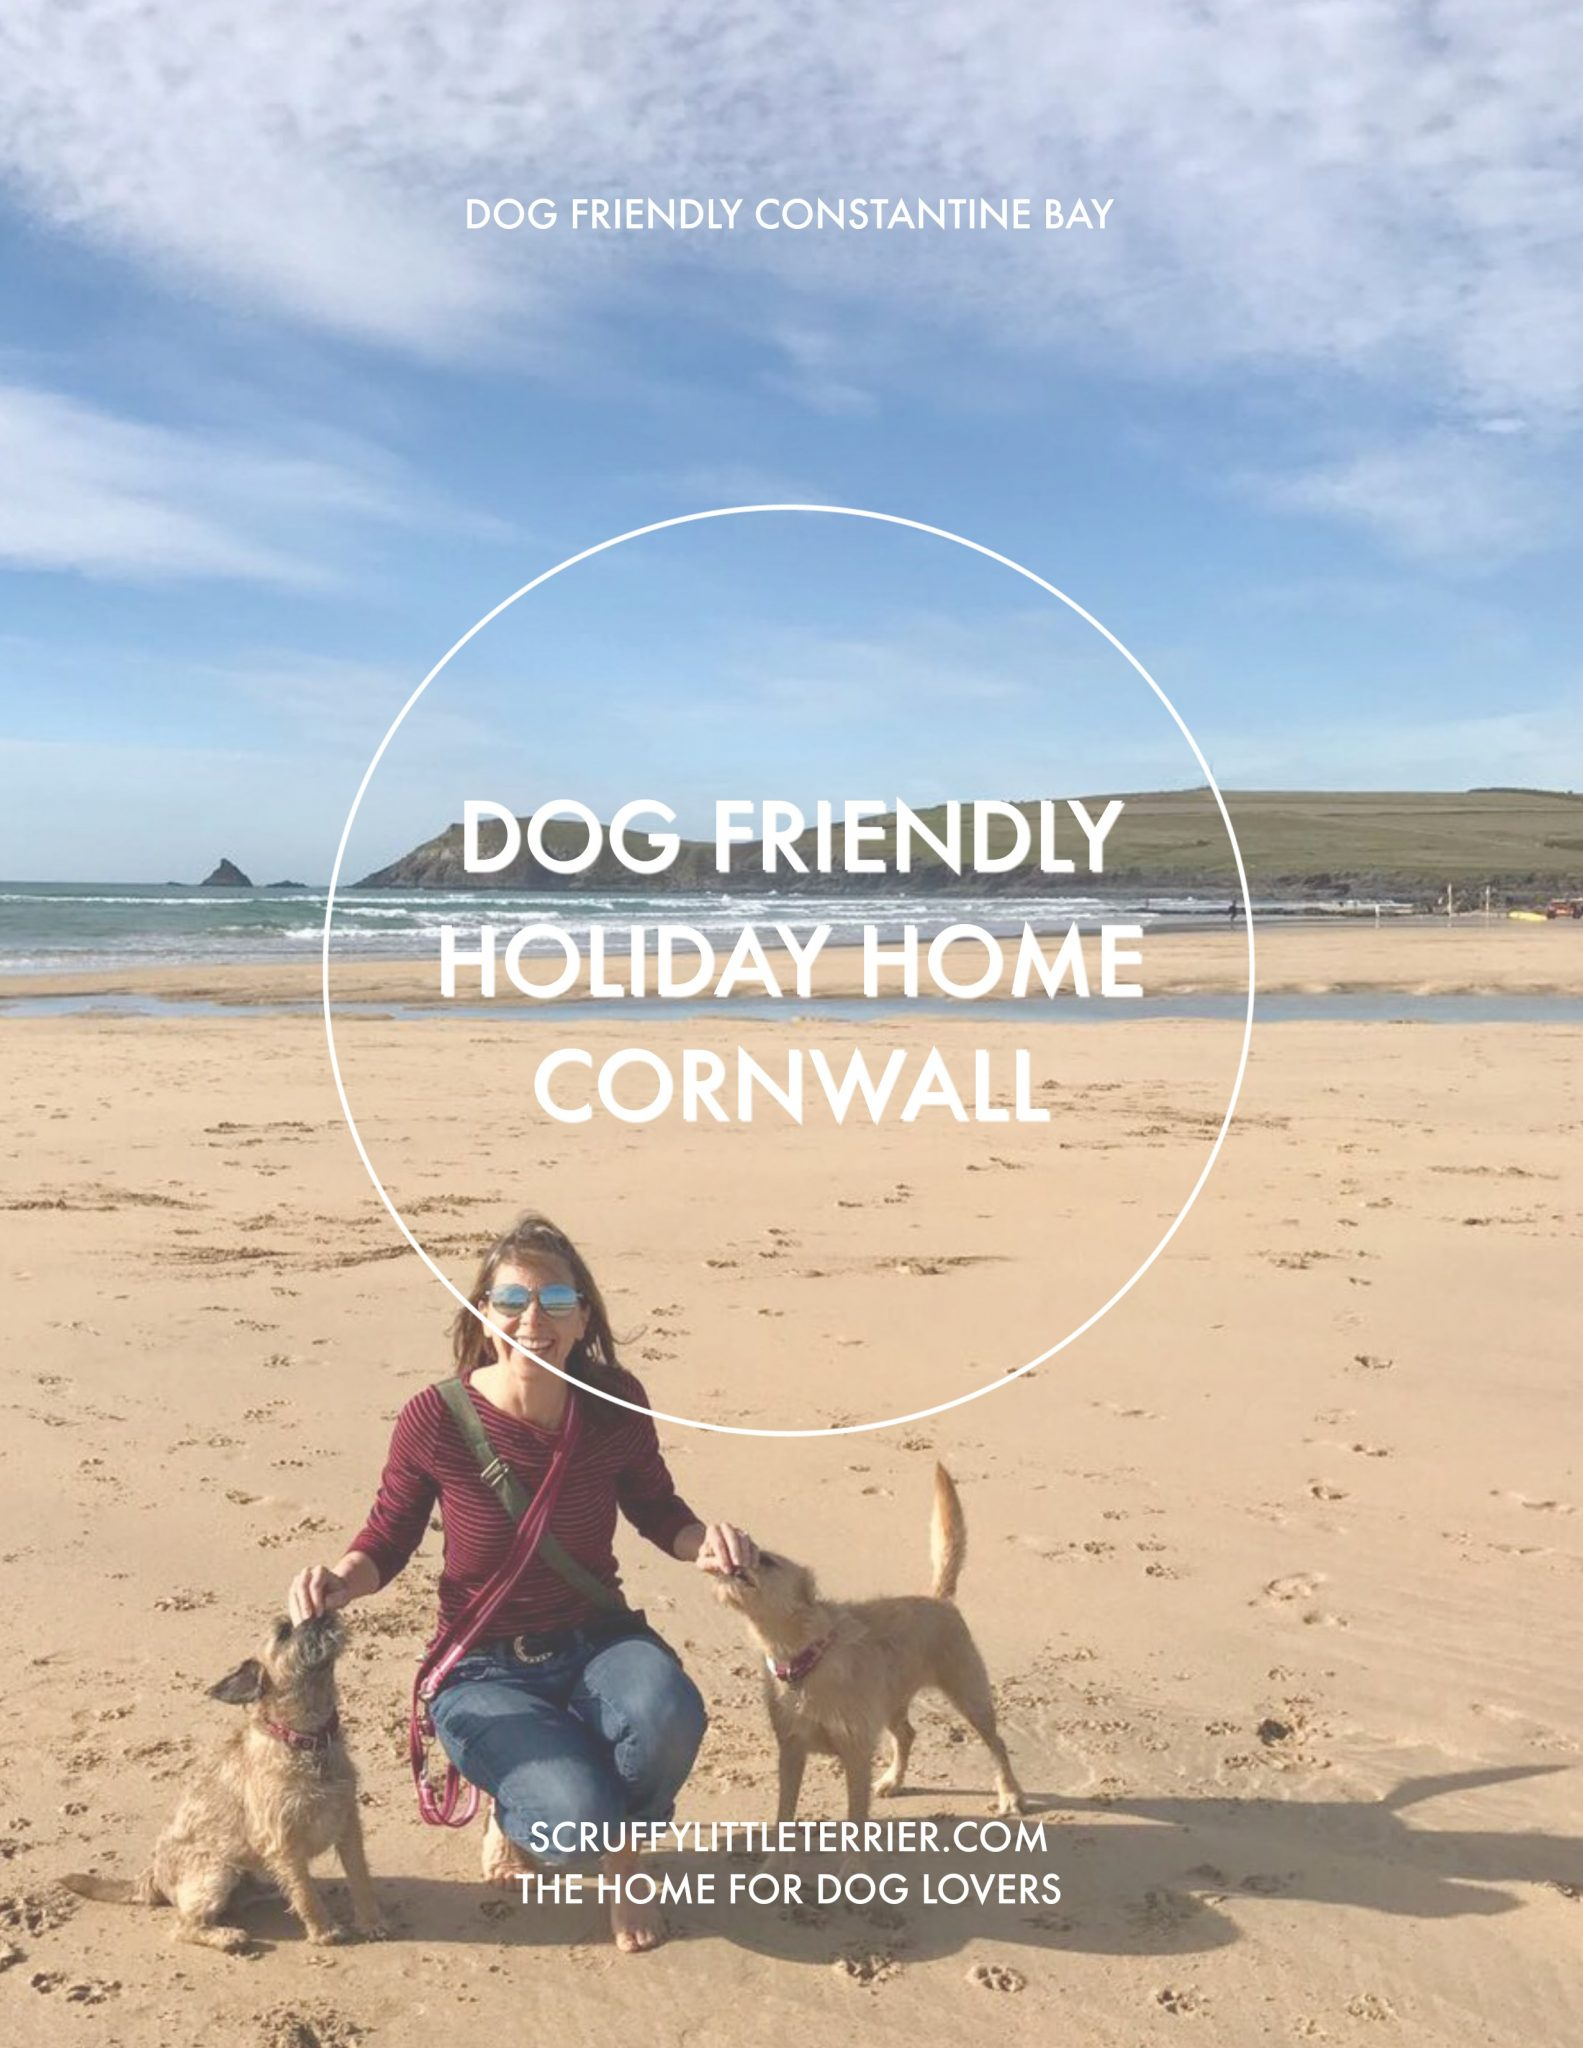 Constantine Bay {Dog Friendly Holiday} #ConstantineBay #Review #Cornwall #Holiday#DogFriendly #Stay www.scruffylittleterrier.com